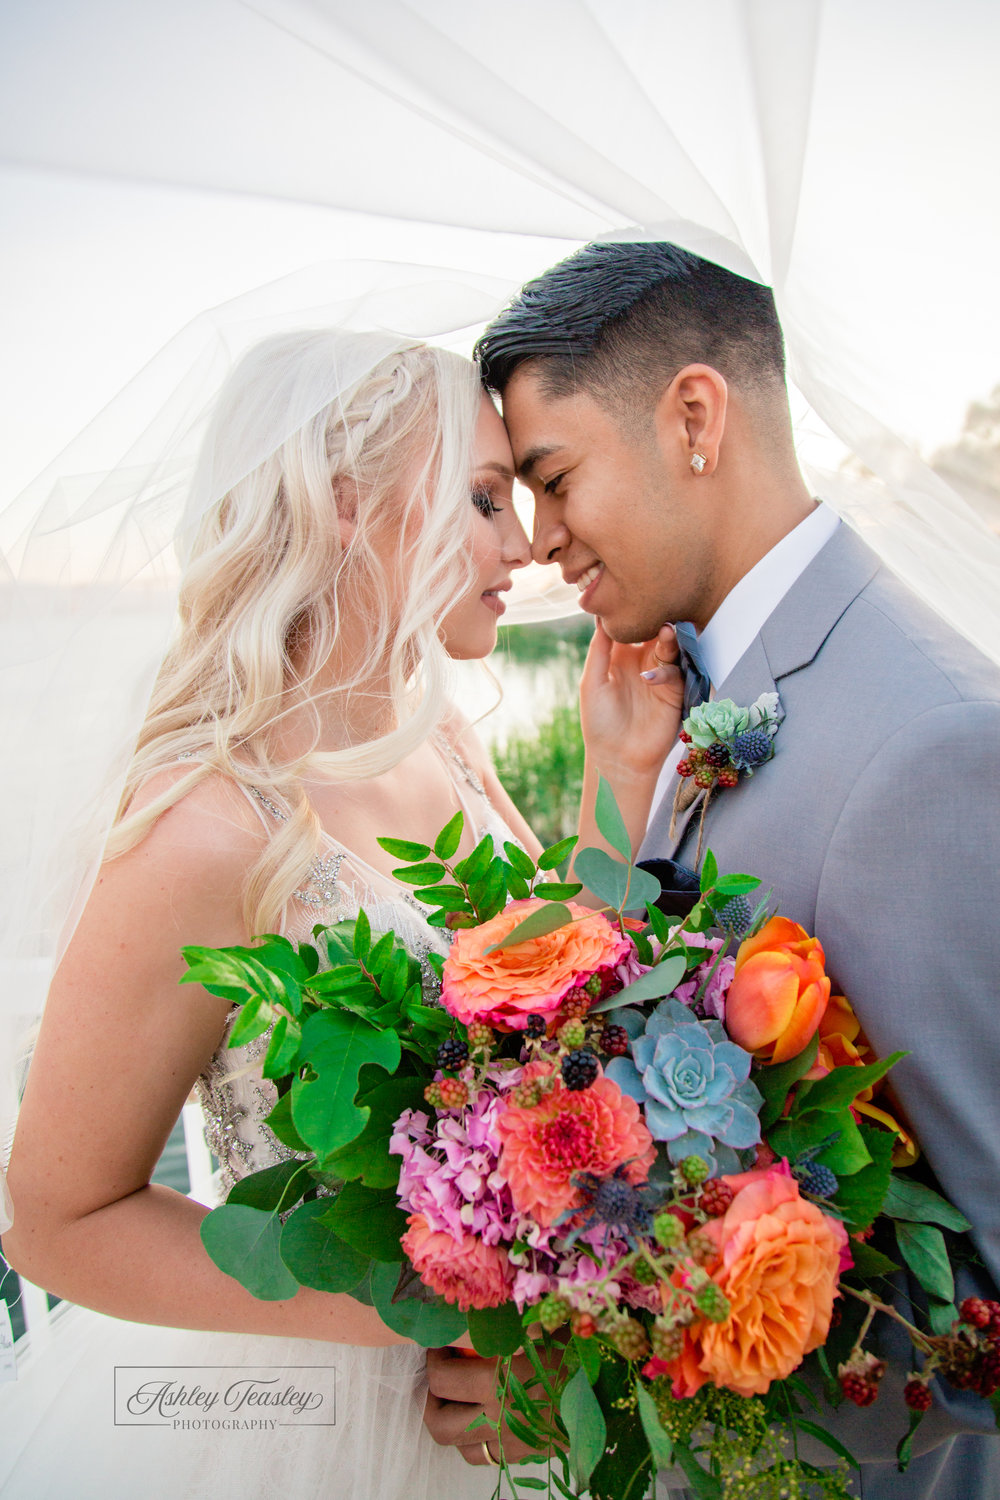 Social Media - Belle Vie - Sacramento Wedding Photographer - Ashley Teasley Photography (12 of 13).jpg